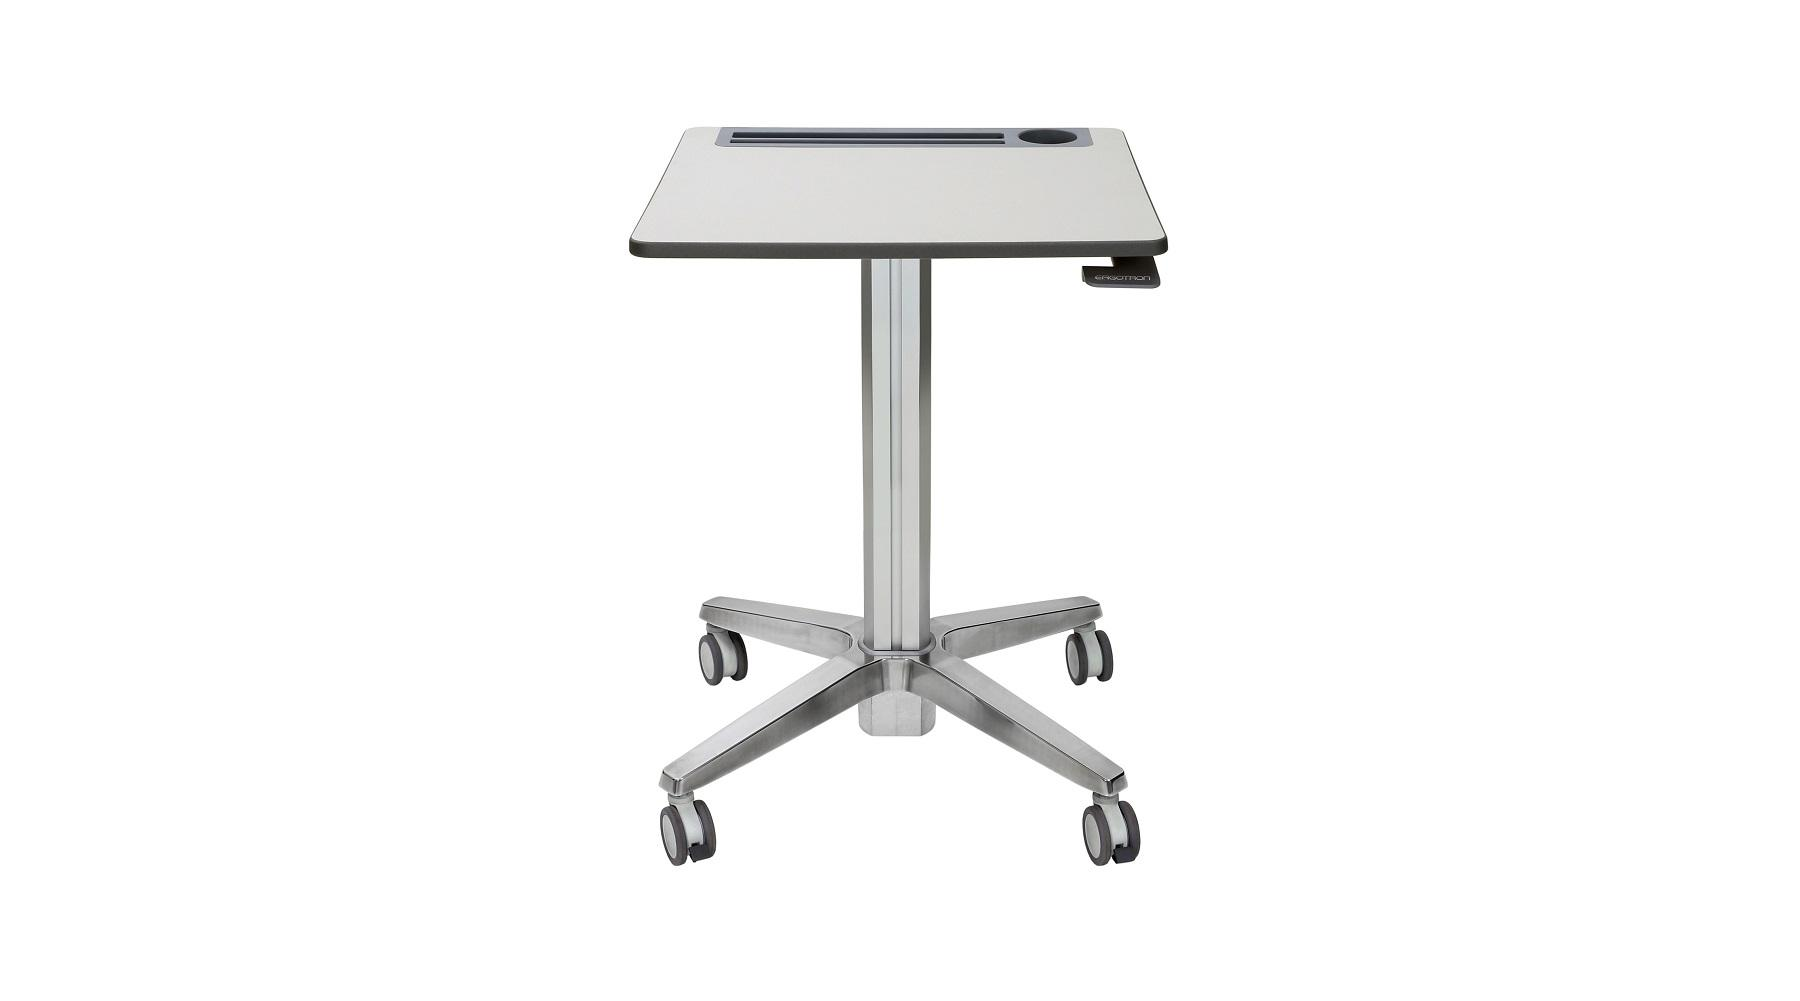 Learnfit mobile sit stand desk